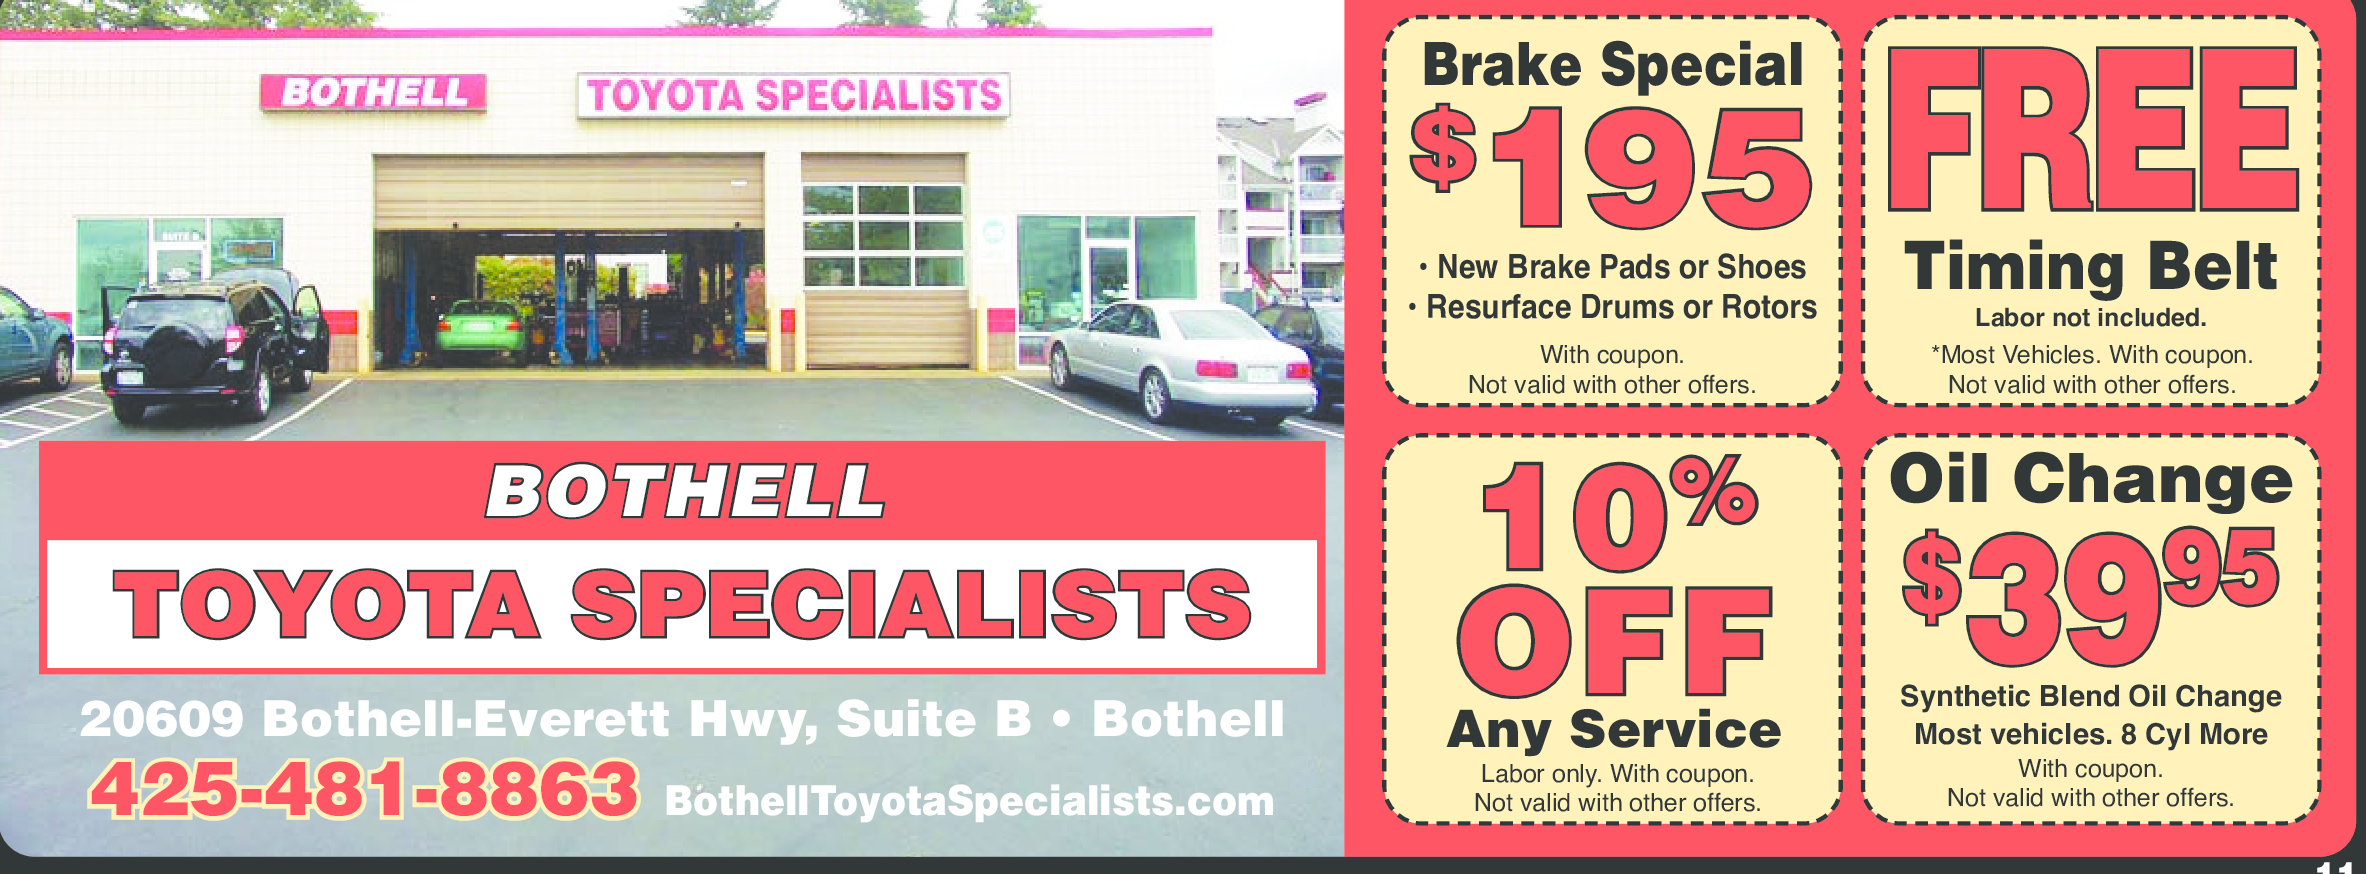 Printable Toyota Oil Change Coupons >> Bothell Toyota Specialists Mill Creek/Silver Lake Coupons